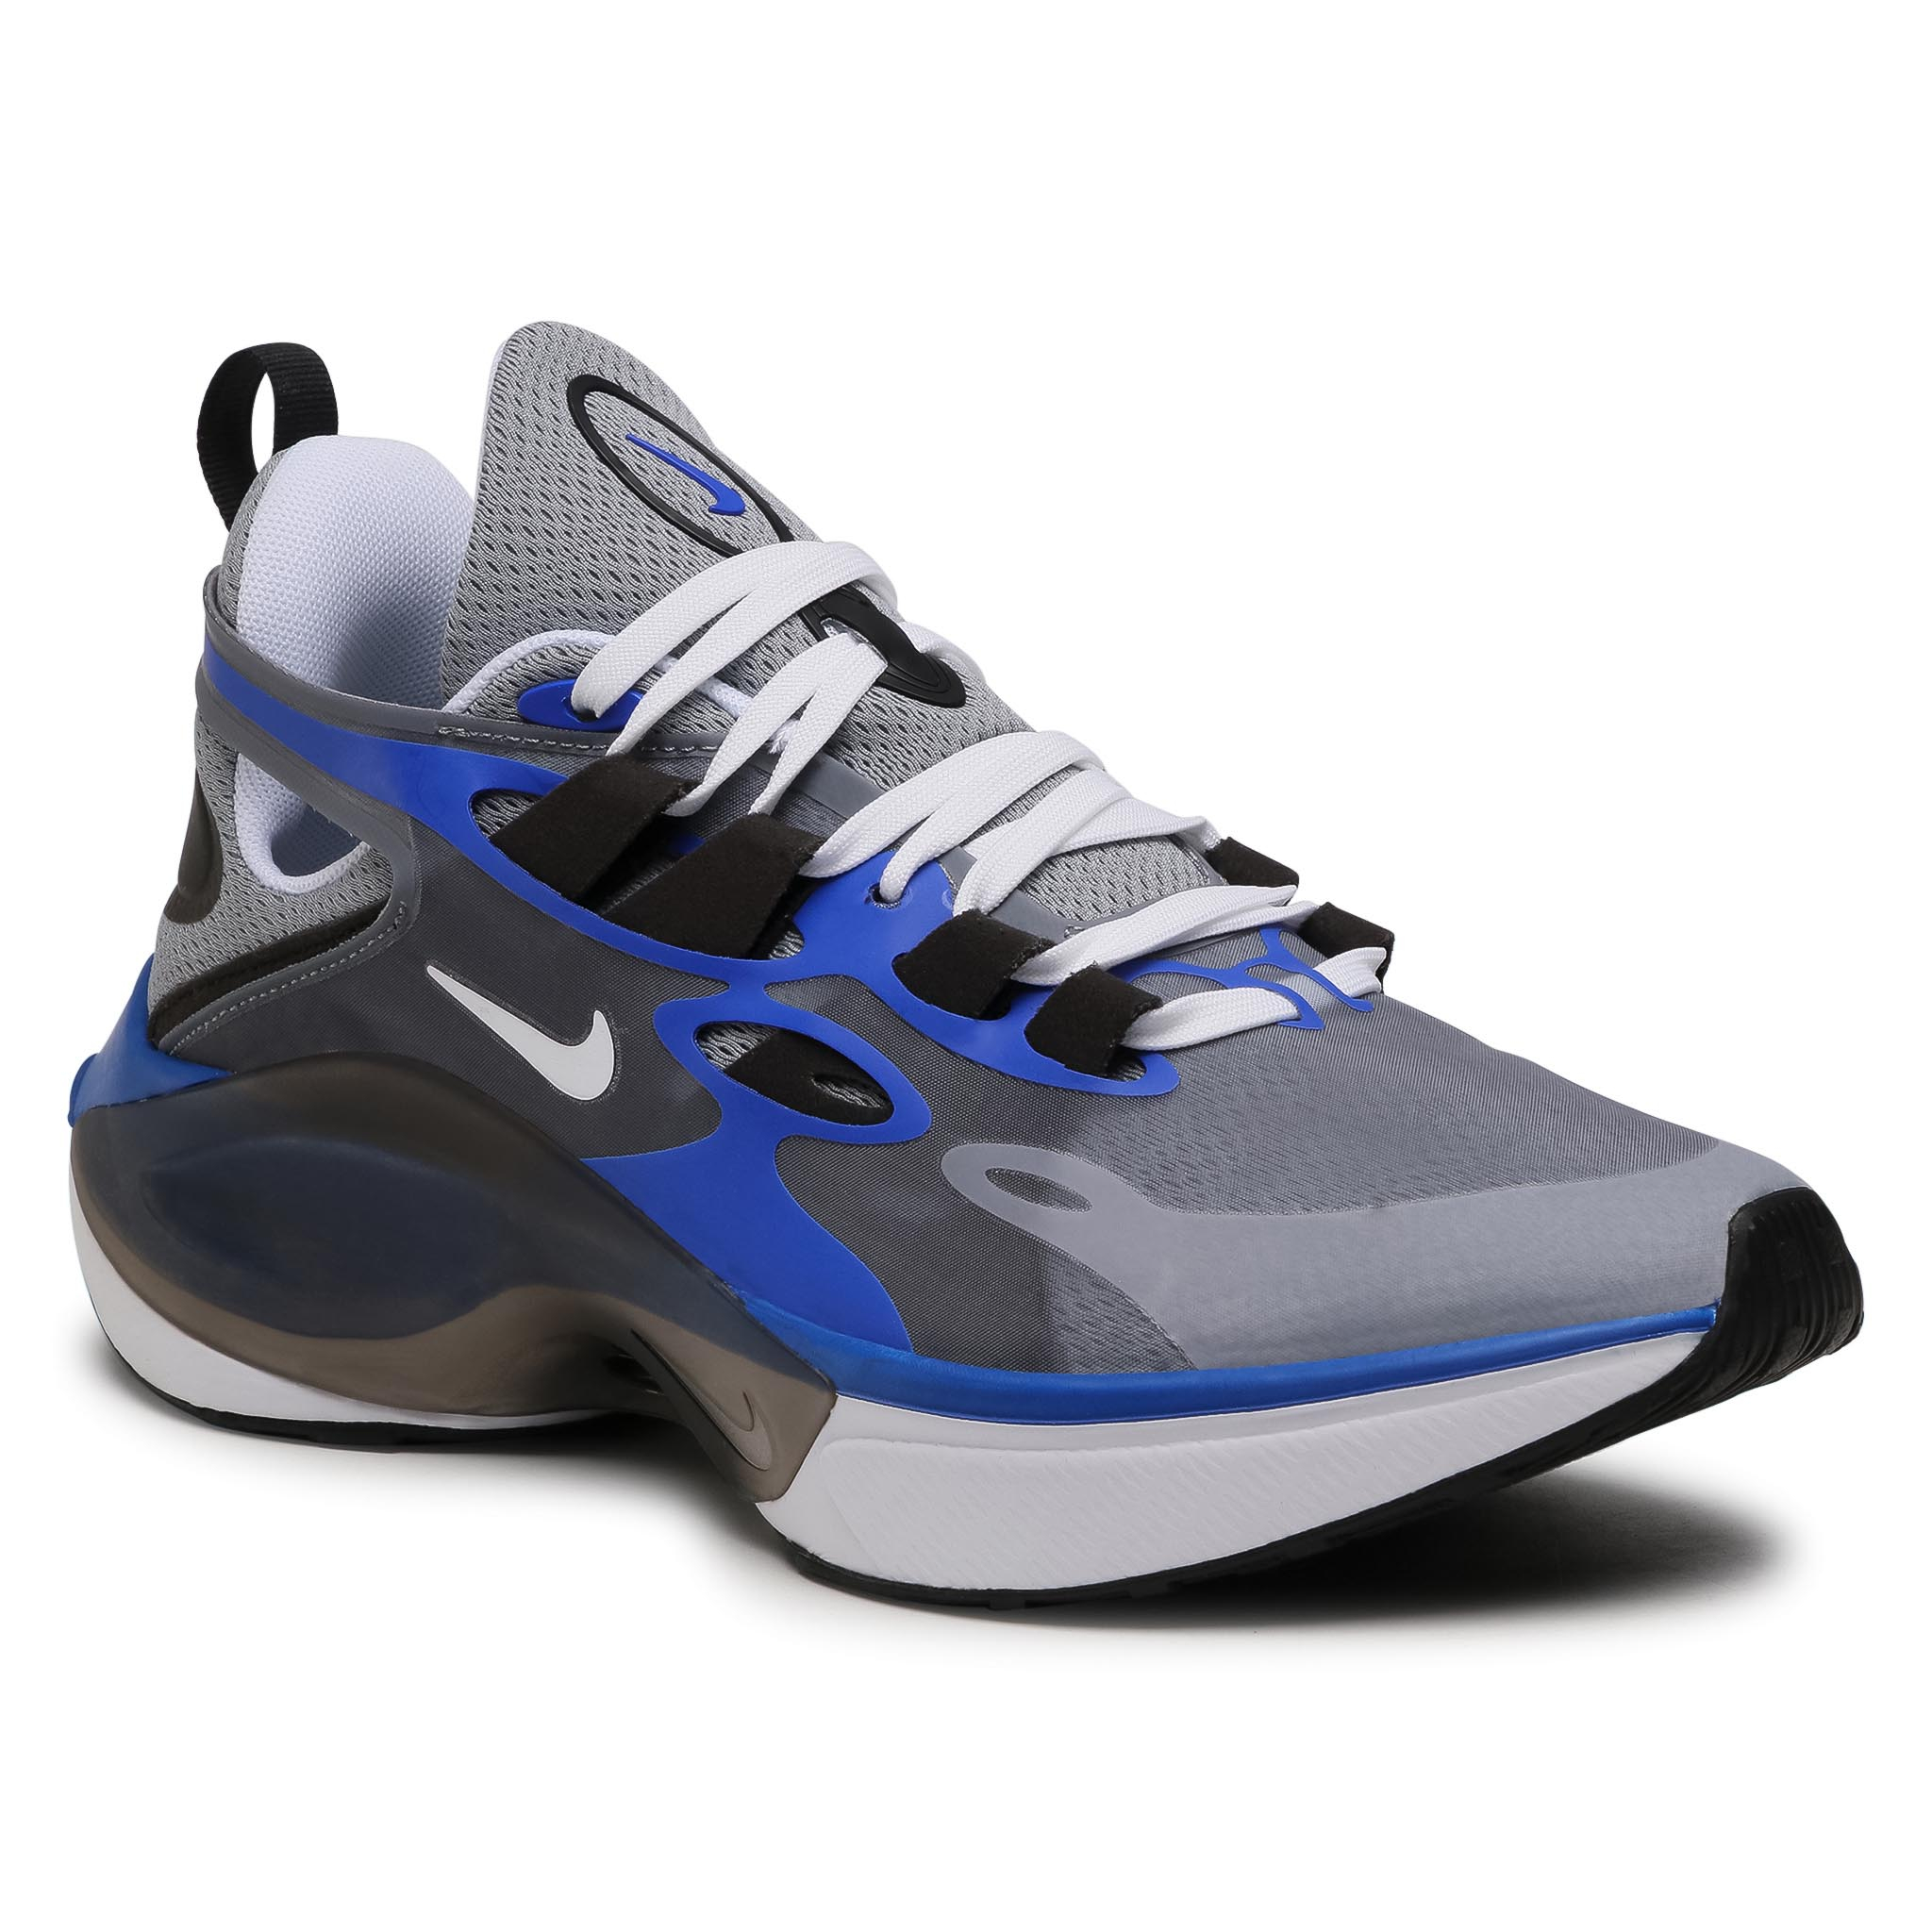 Batai NIKE - Signal D/MS/X AT53030 007 Particle Grey/White/Racer Blue